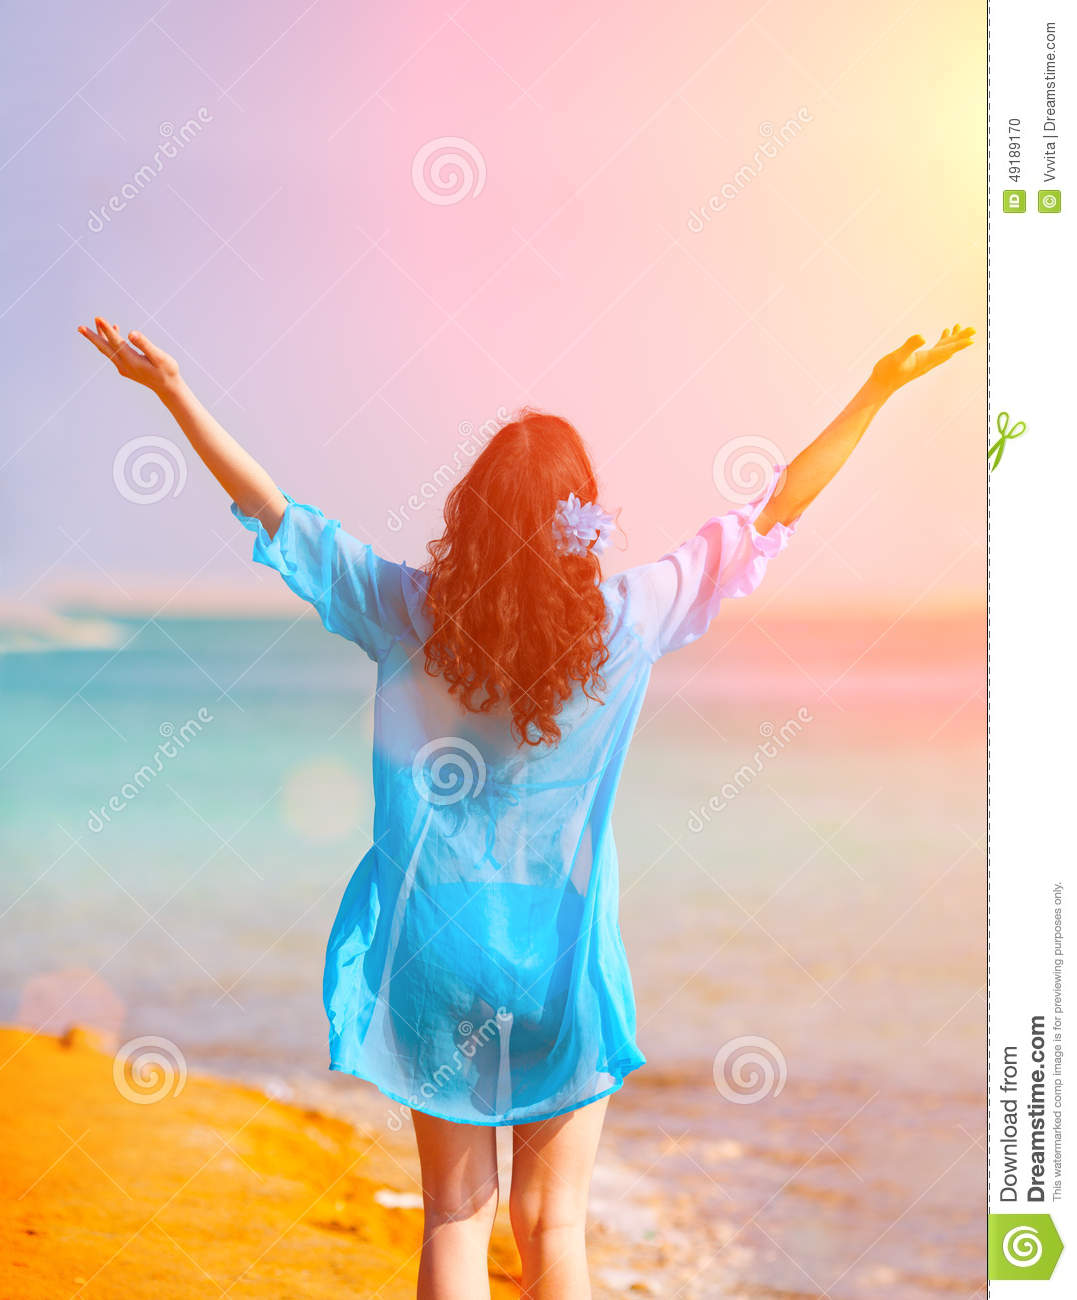 e3cec35e809 Happy Young Woman Enjoing The Sun Stock Photo - Image of israel ...